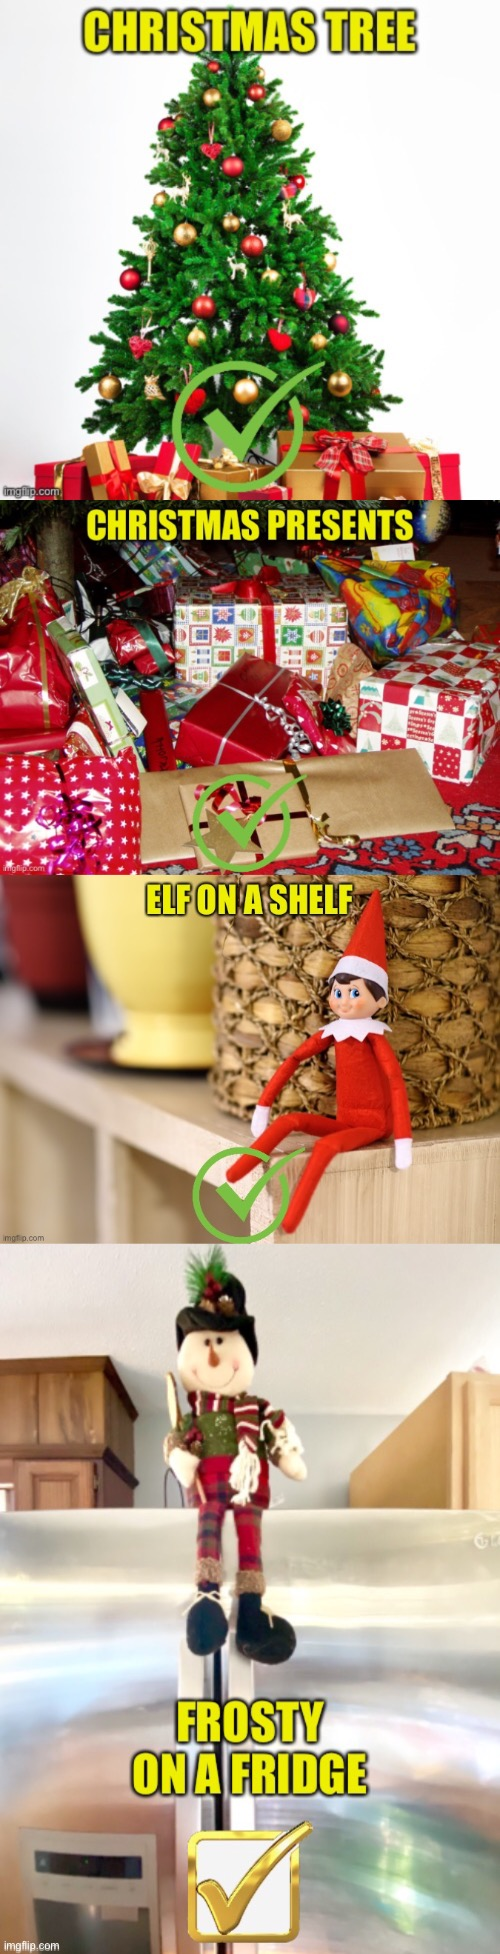 A 2020 Christmas Checklist | image tagged in checklist,christmas,elf,frosty,tree,gifts | made w/ Imgflip meme maker